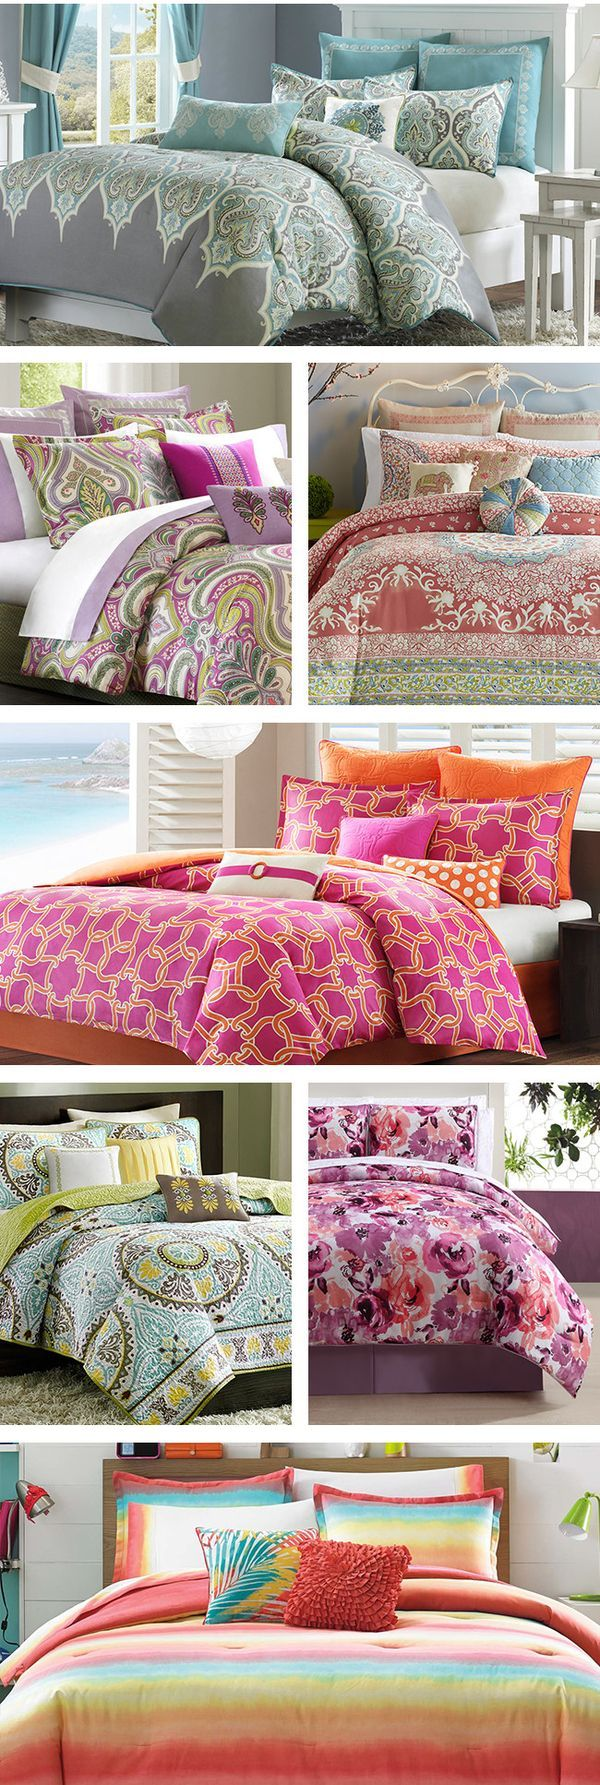 Billabong bedding sets - Billabong Bedding Sets 15